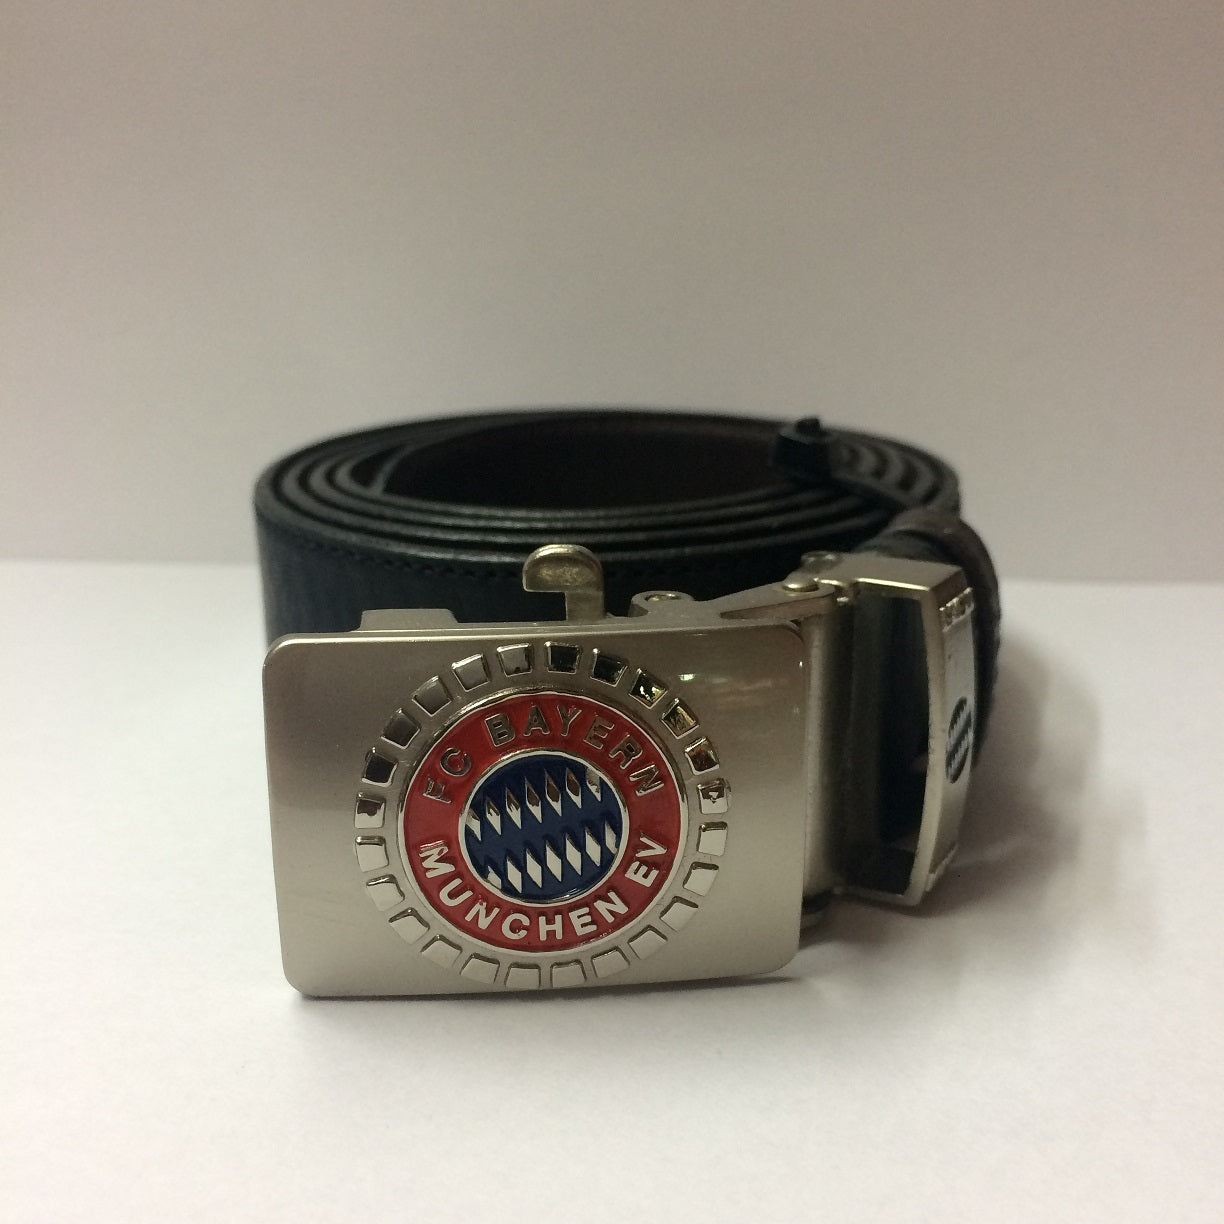 Bayern Munich Men's Dress Belt